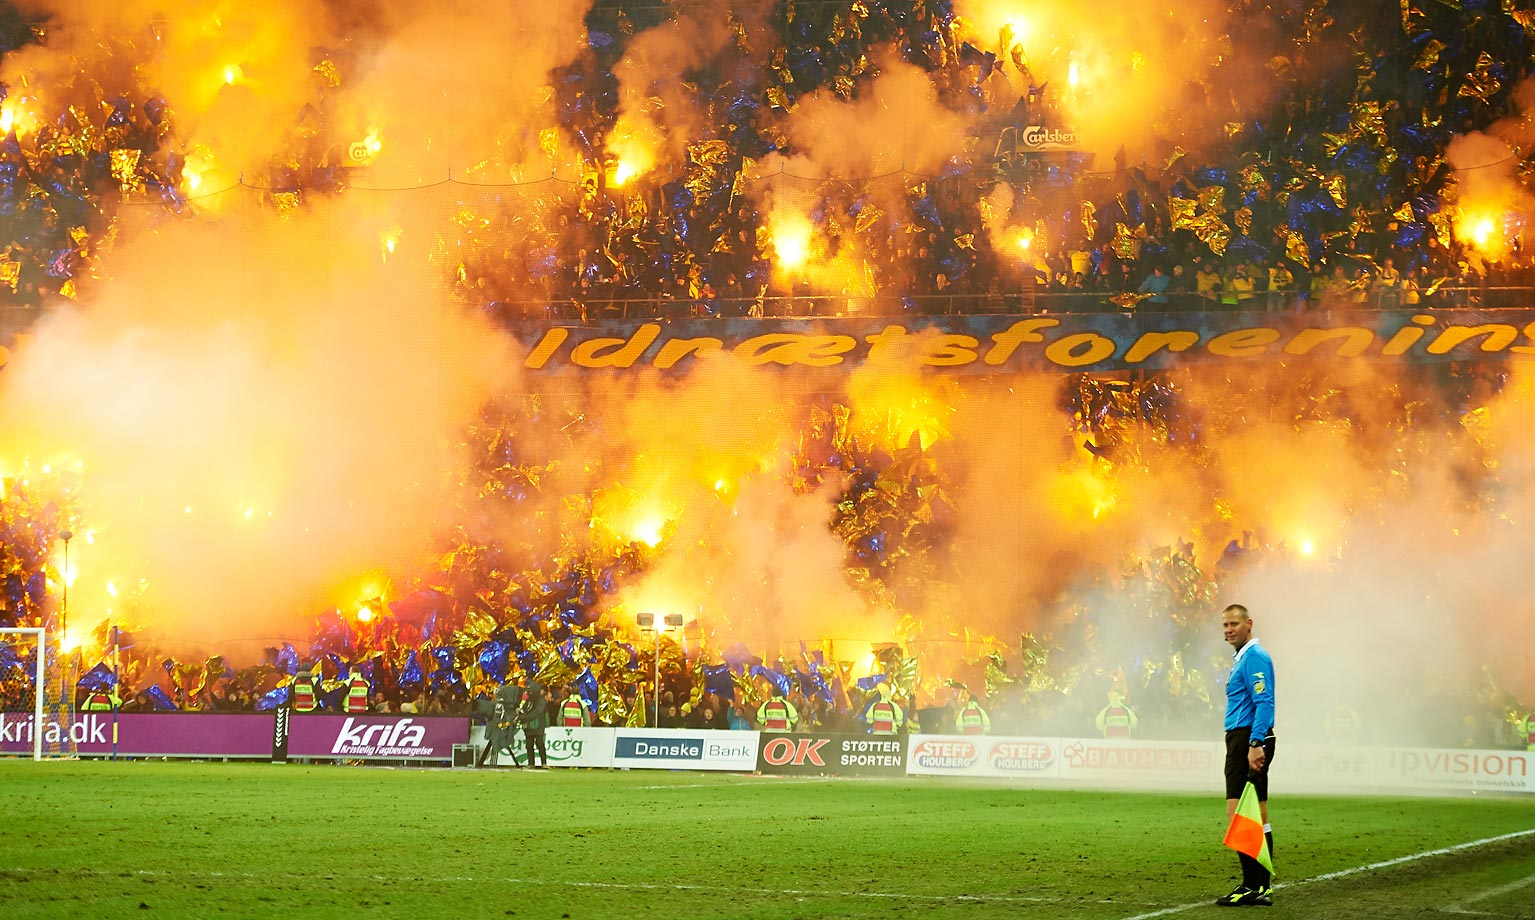 Fans celebrate the 50th birthday of Brondby IF at the 50th minute during the Danish Superliga match between Brondby IF and Silkeborg IF.